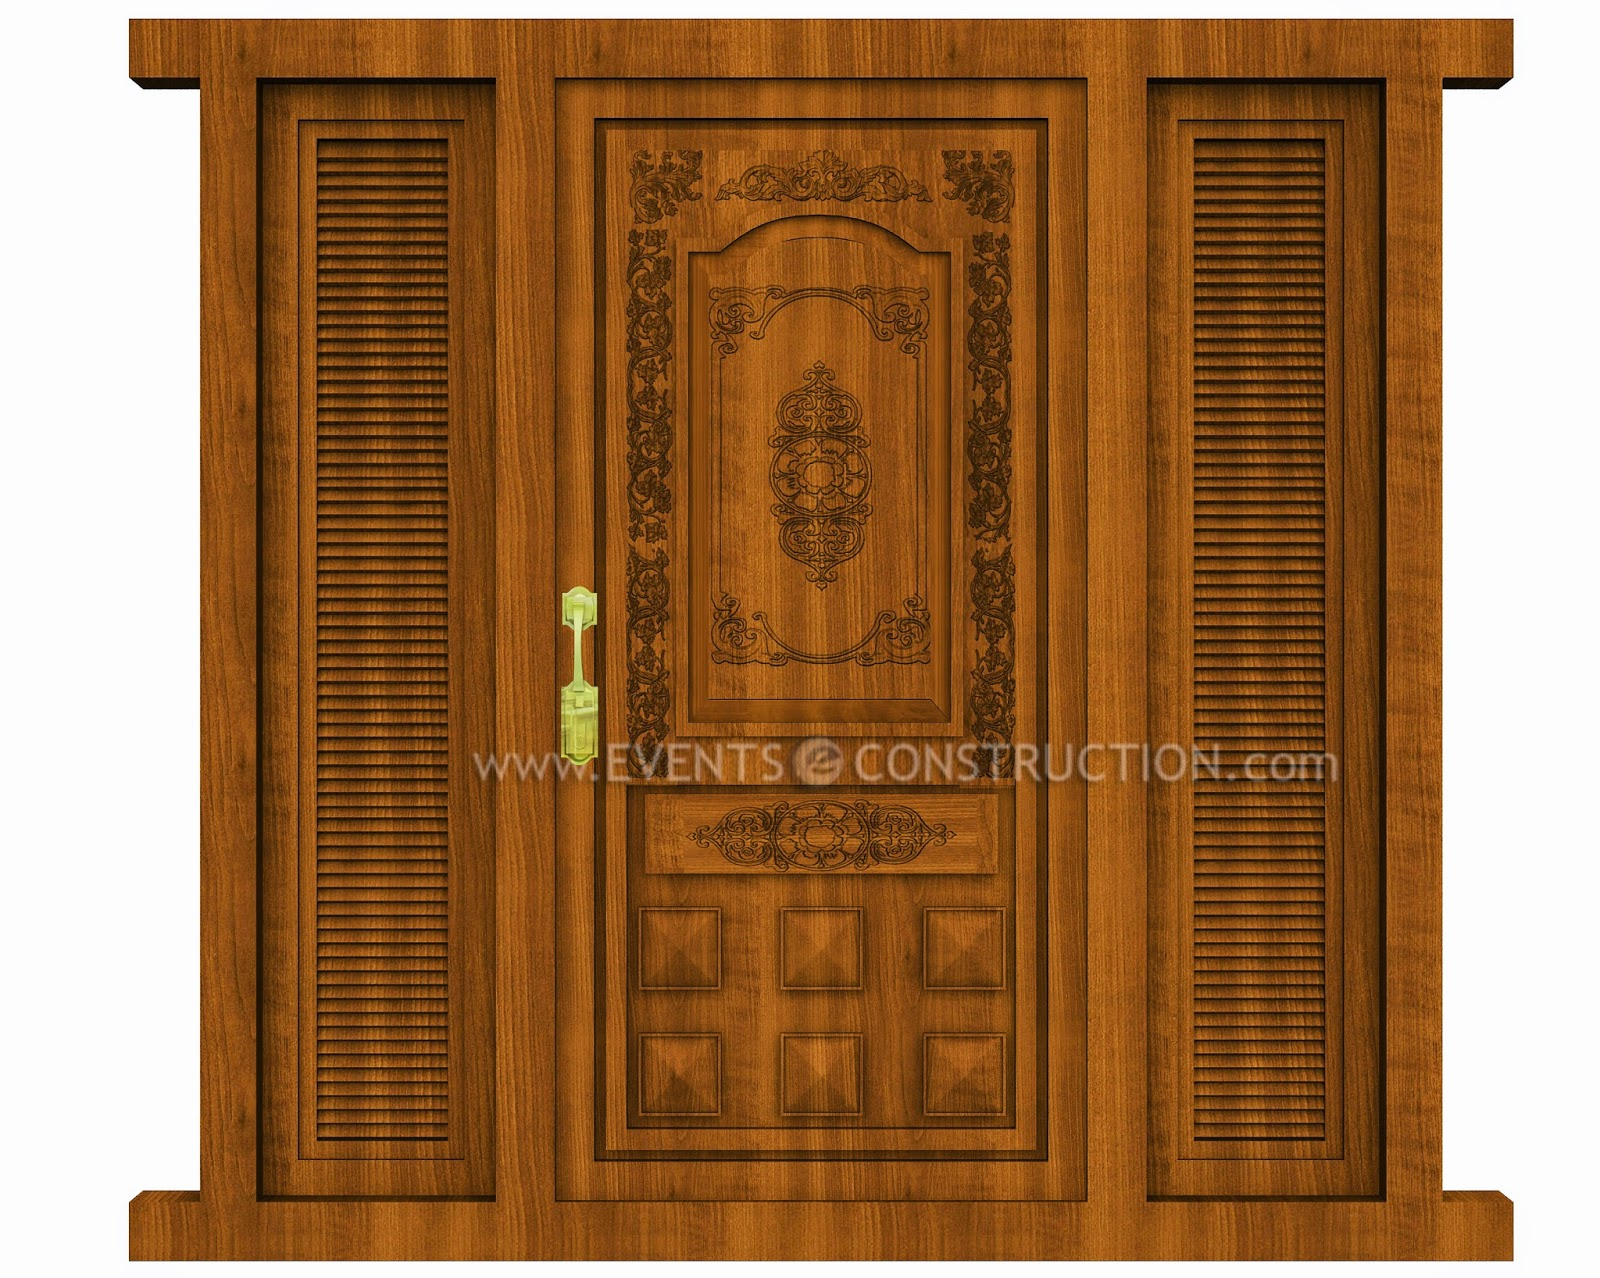 Evens construction pvt ltd wooden main door design for New main door design